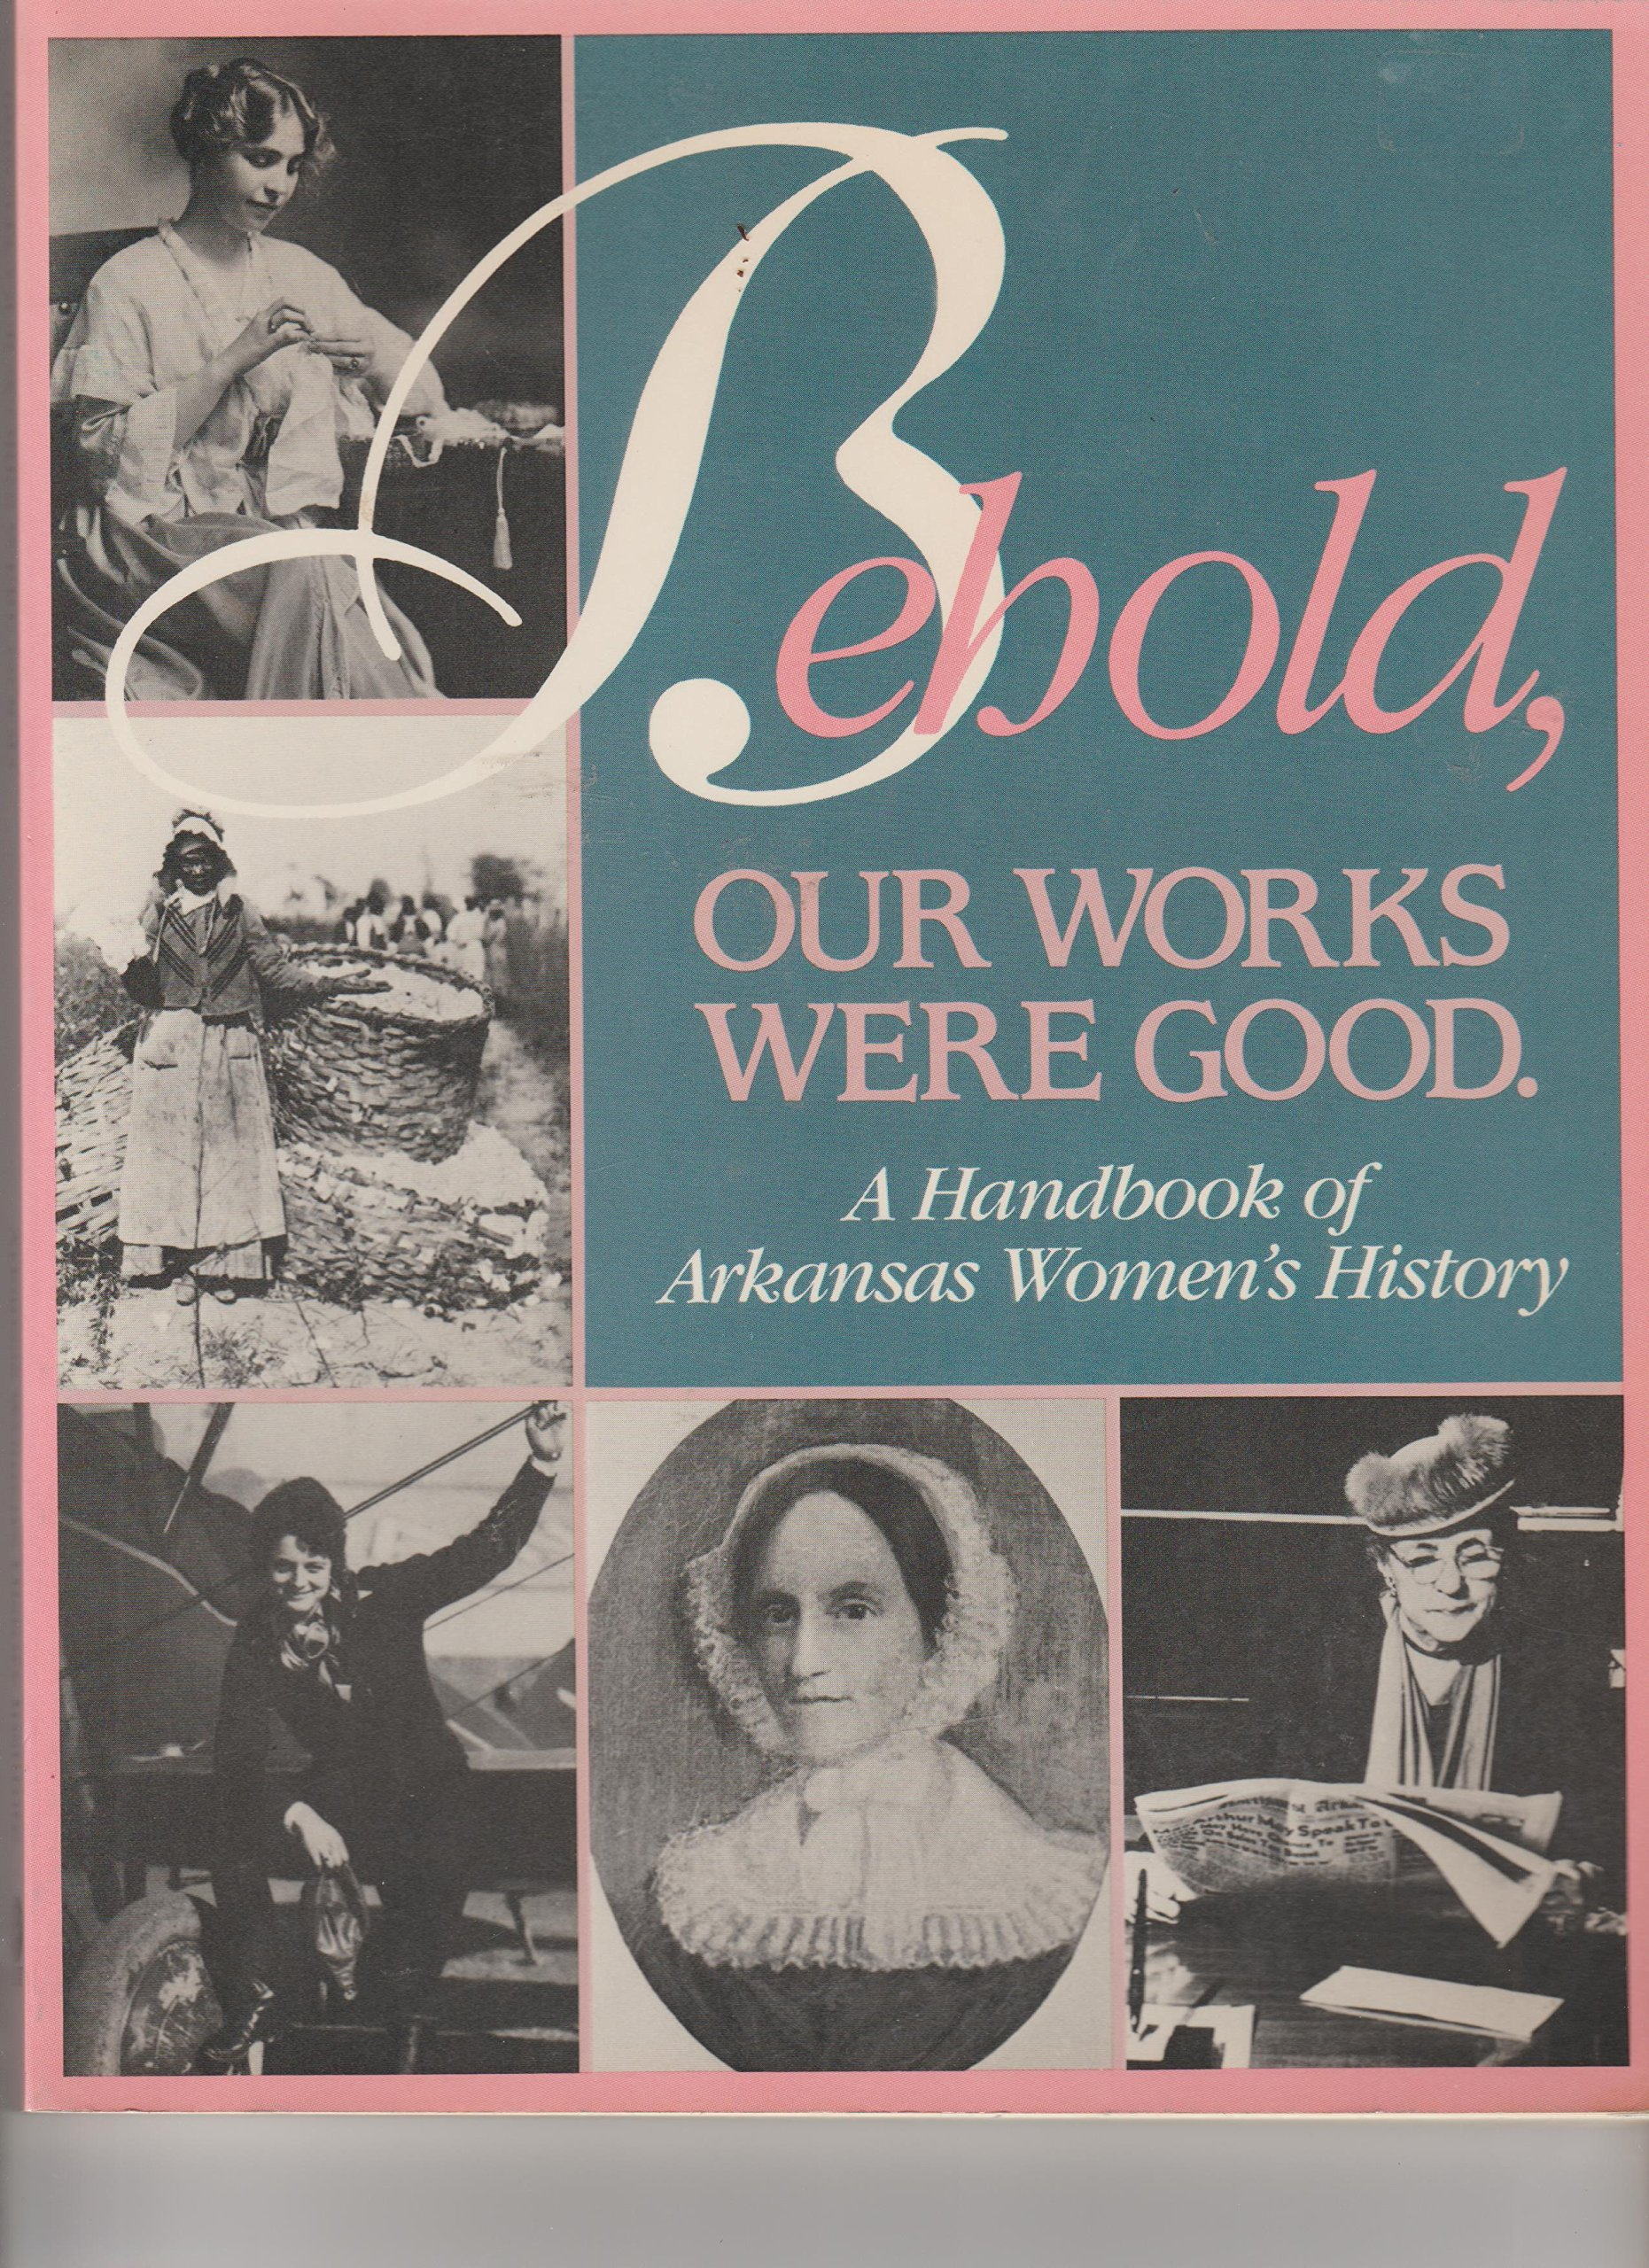 Behold, our works were good : a handbook of Arkansas women's history